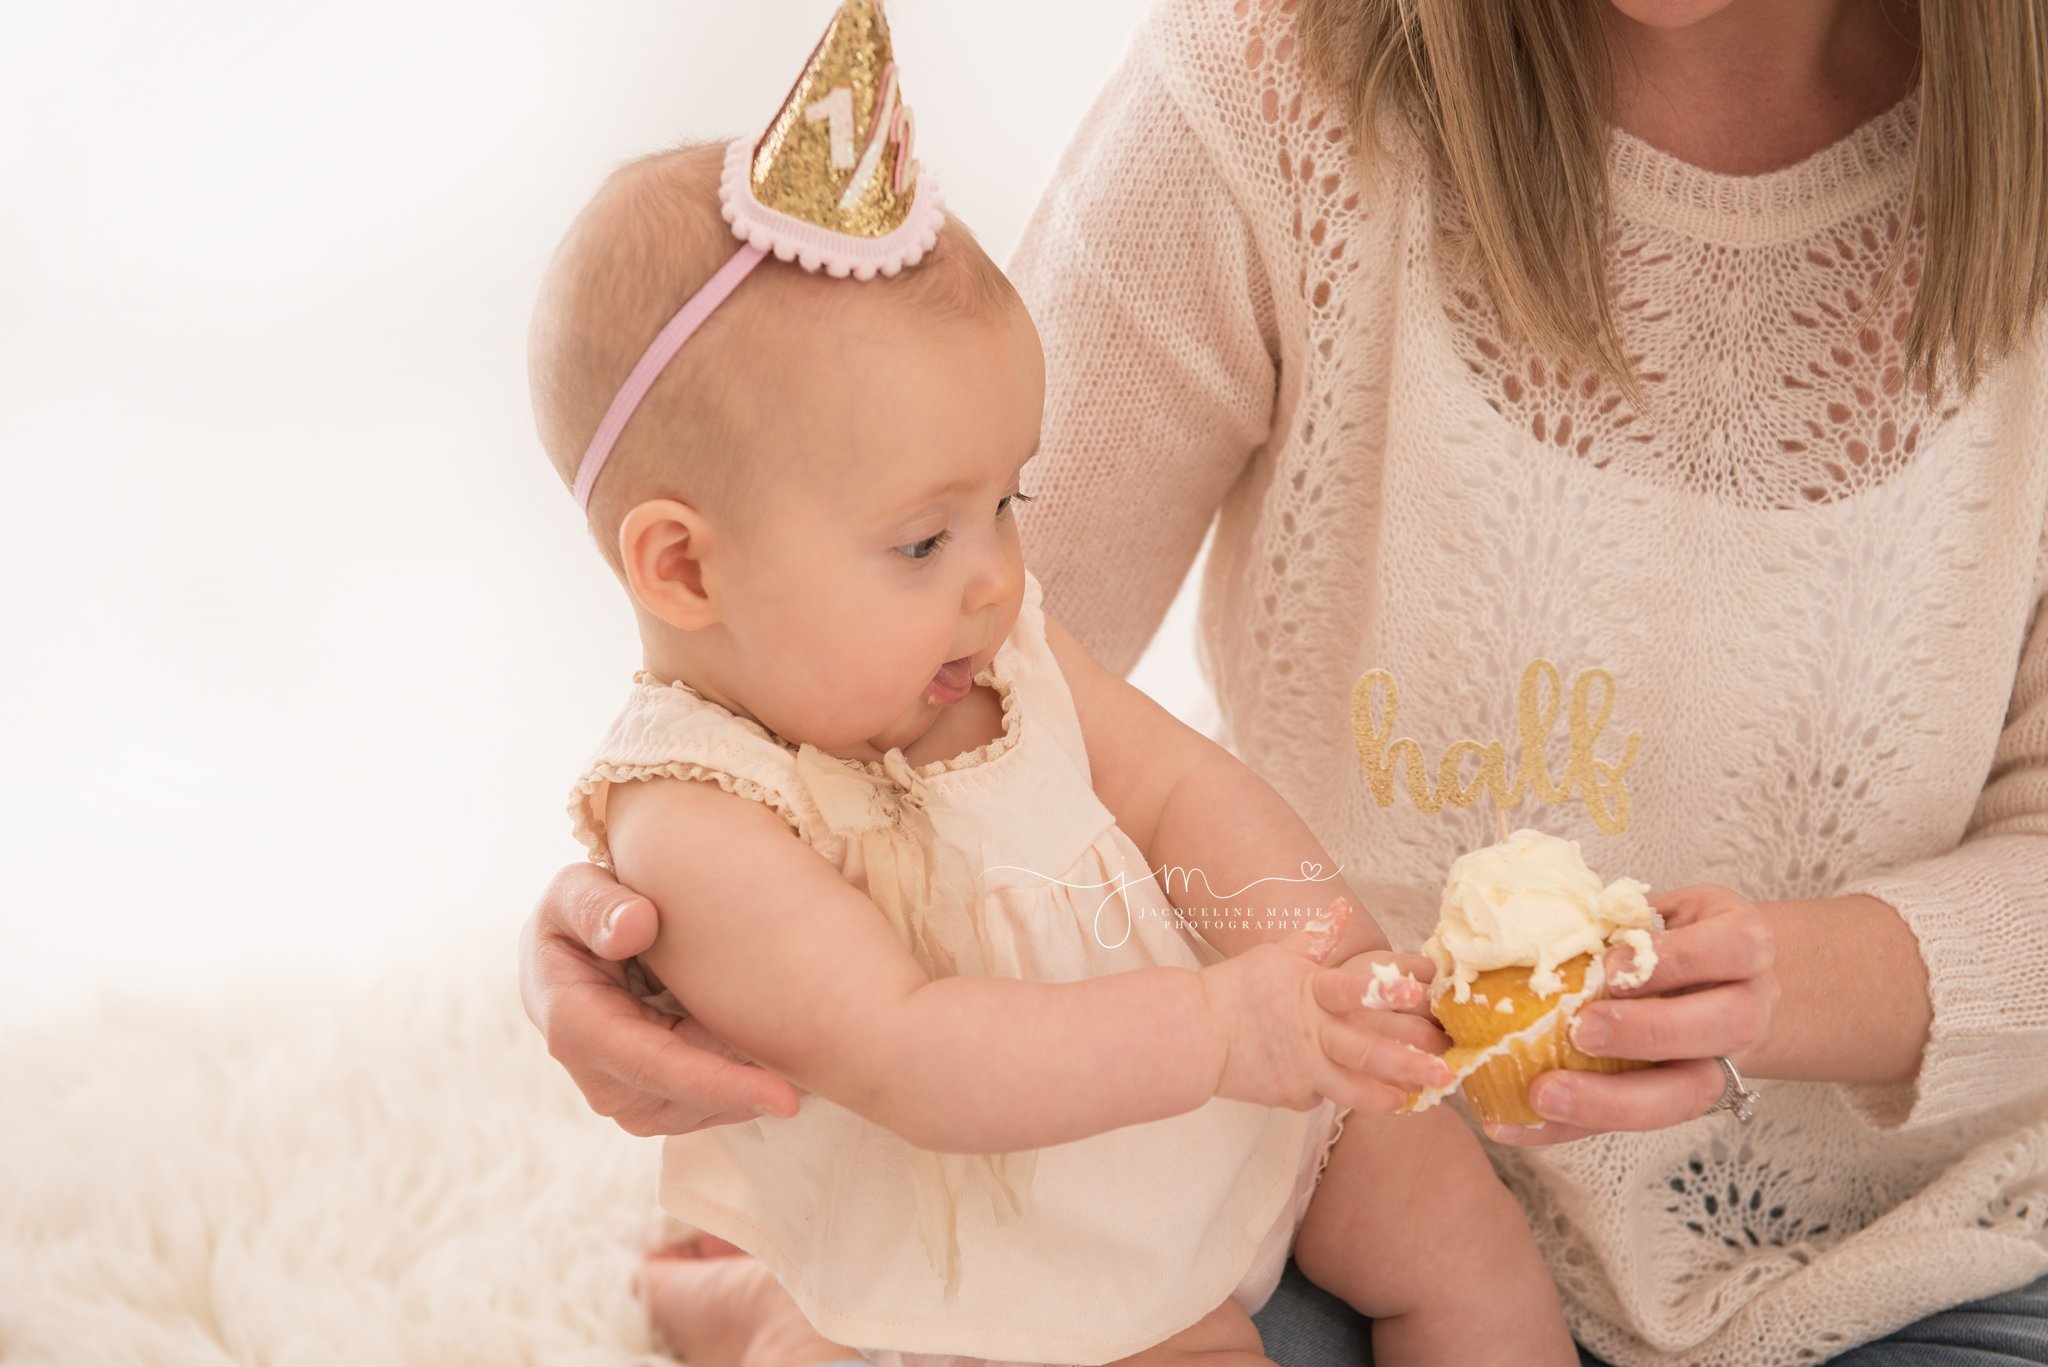 columbus ohio baby girl wears a half birthday hat and holds a cupcake for milestone baby pictures